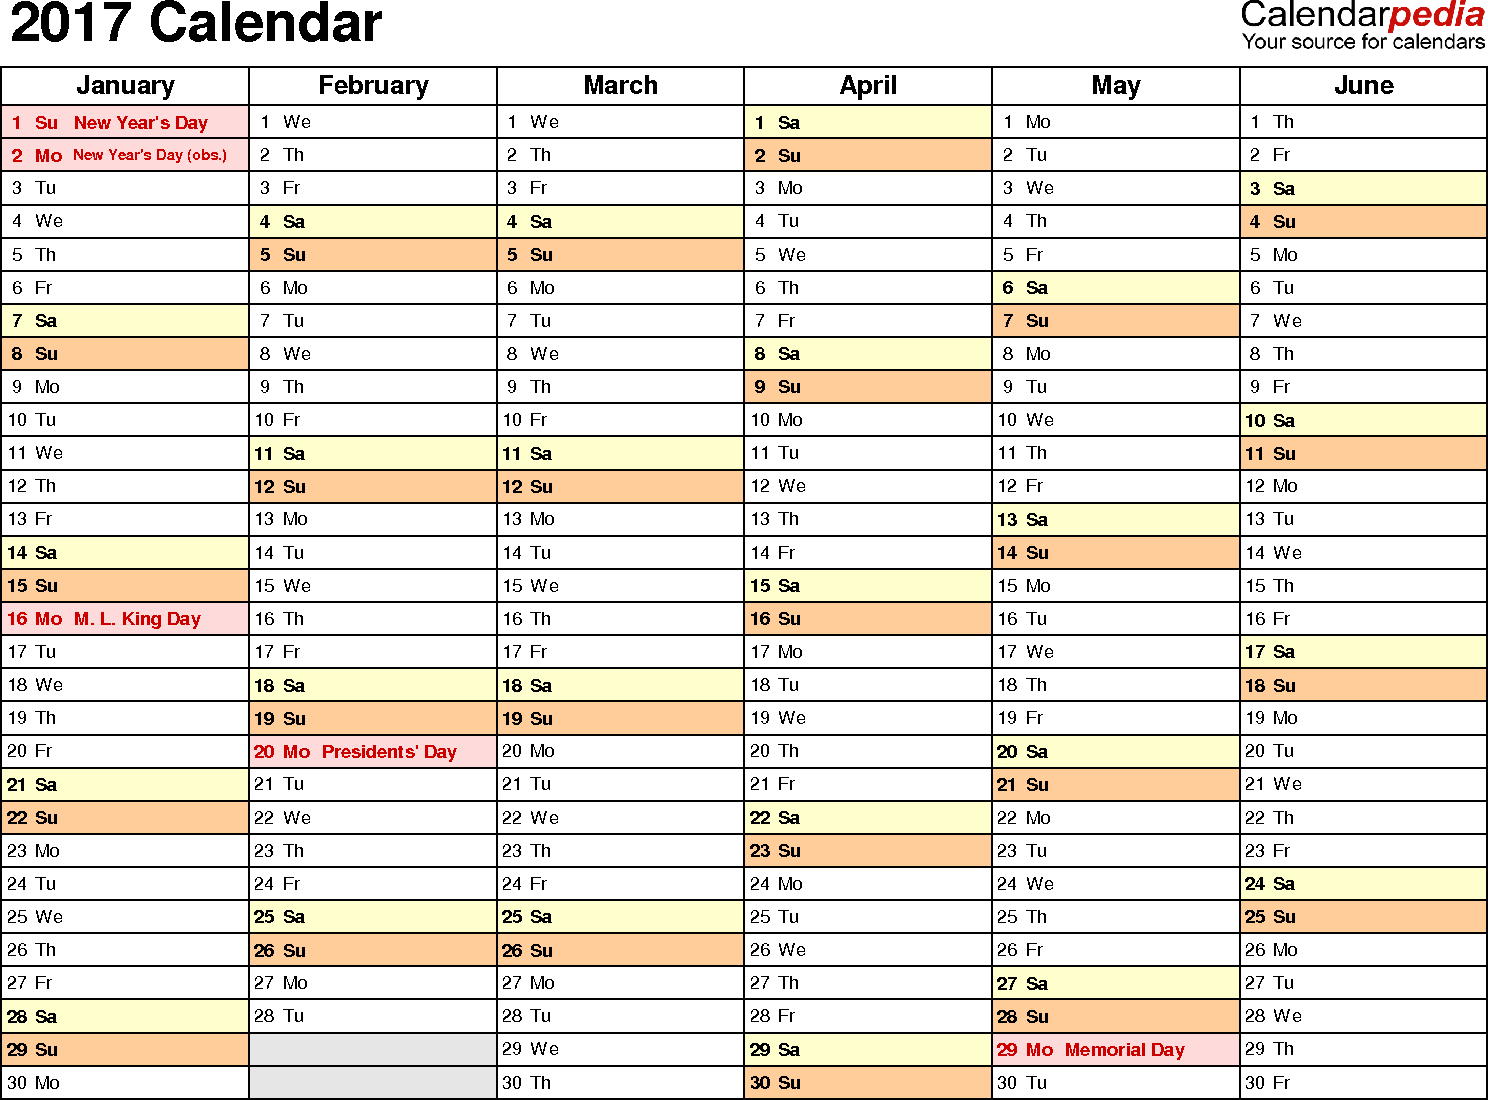 Ediblewildsus  Stunning  Calendar  Download  Free Printable Excel Templates Xls With Marvelous Template   Calendar For Excel Months Horizontally  Pages Landscape Orientation With Archaic Excel Bible Also How To Add Watermark In Excel In Addition Keyboard Shortcuts Excel And Hide Comments In Excel As Well As Percent Increase Excel Additionally Anova On Excel From Calendarpediacom With Ediblewildsus  Marvelous  Calendar  Download  Free Printable Excel Templates Xls With Archaic Template   Calendar For Excel Months Horizontally  Pages Landscape Orientation And Stunning Excel Bible Also How To Add Watermark In Excel In Addition Keyboard Shortcuts Excel From Calendarpediacom